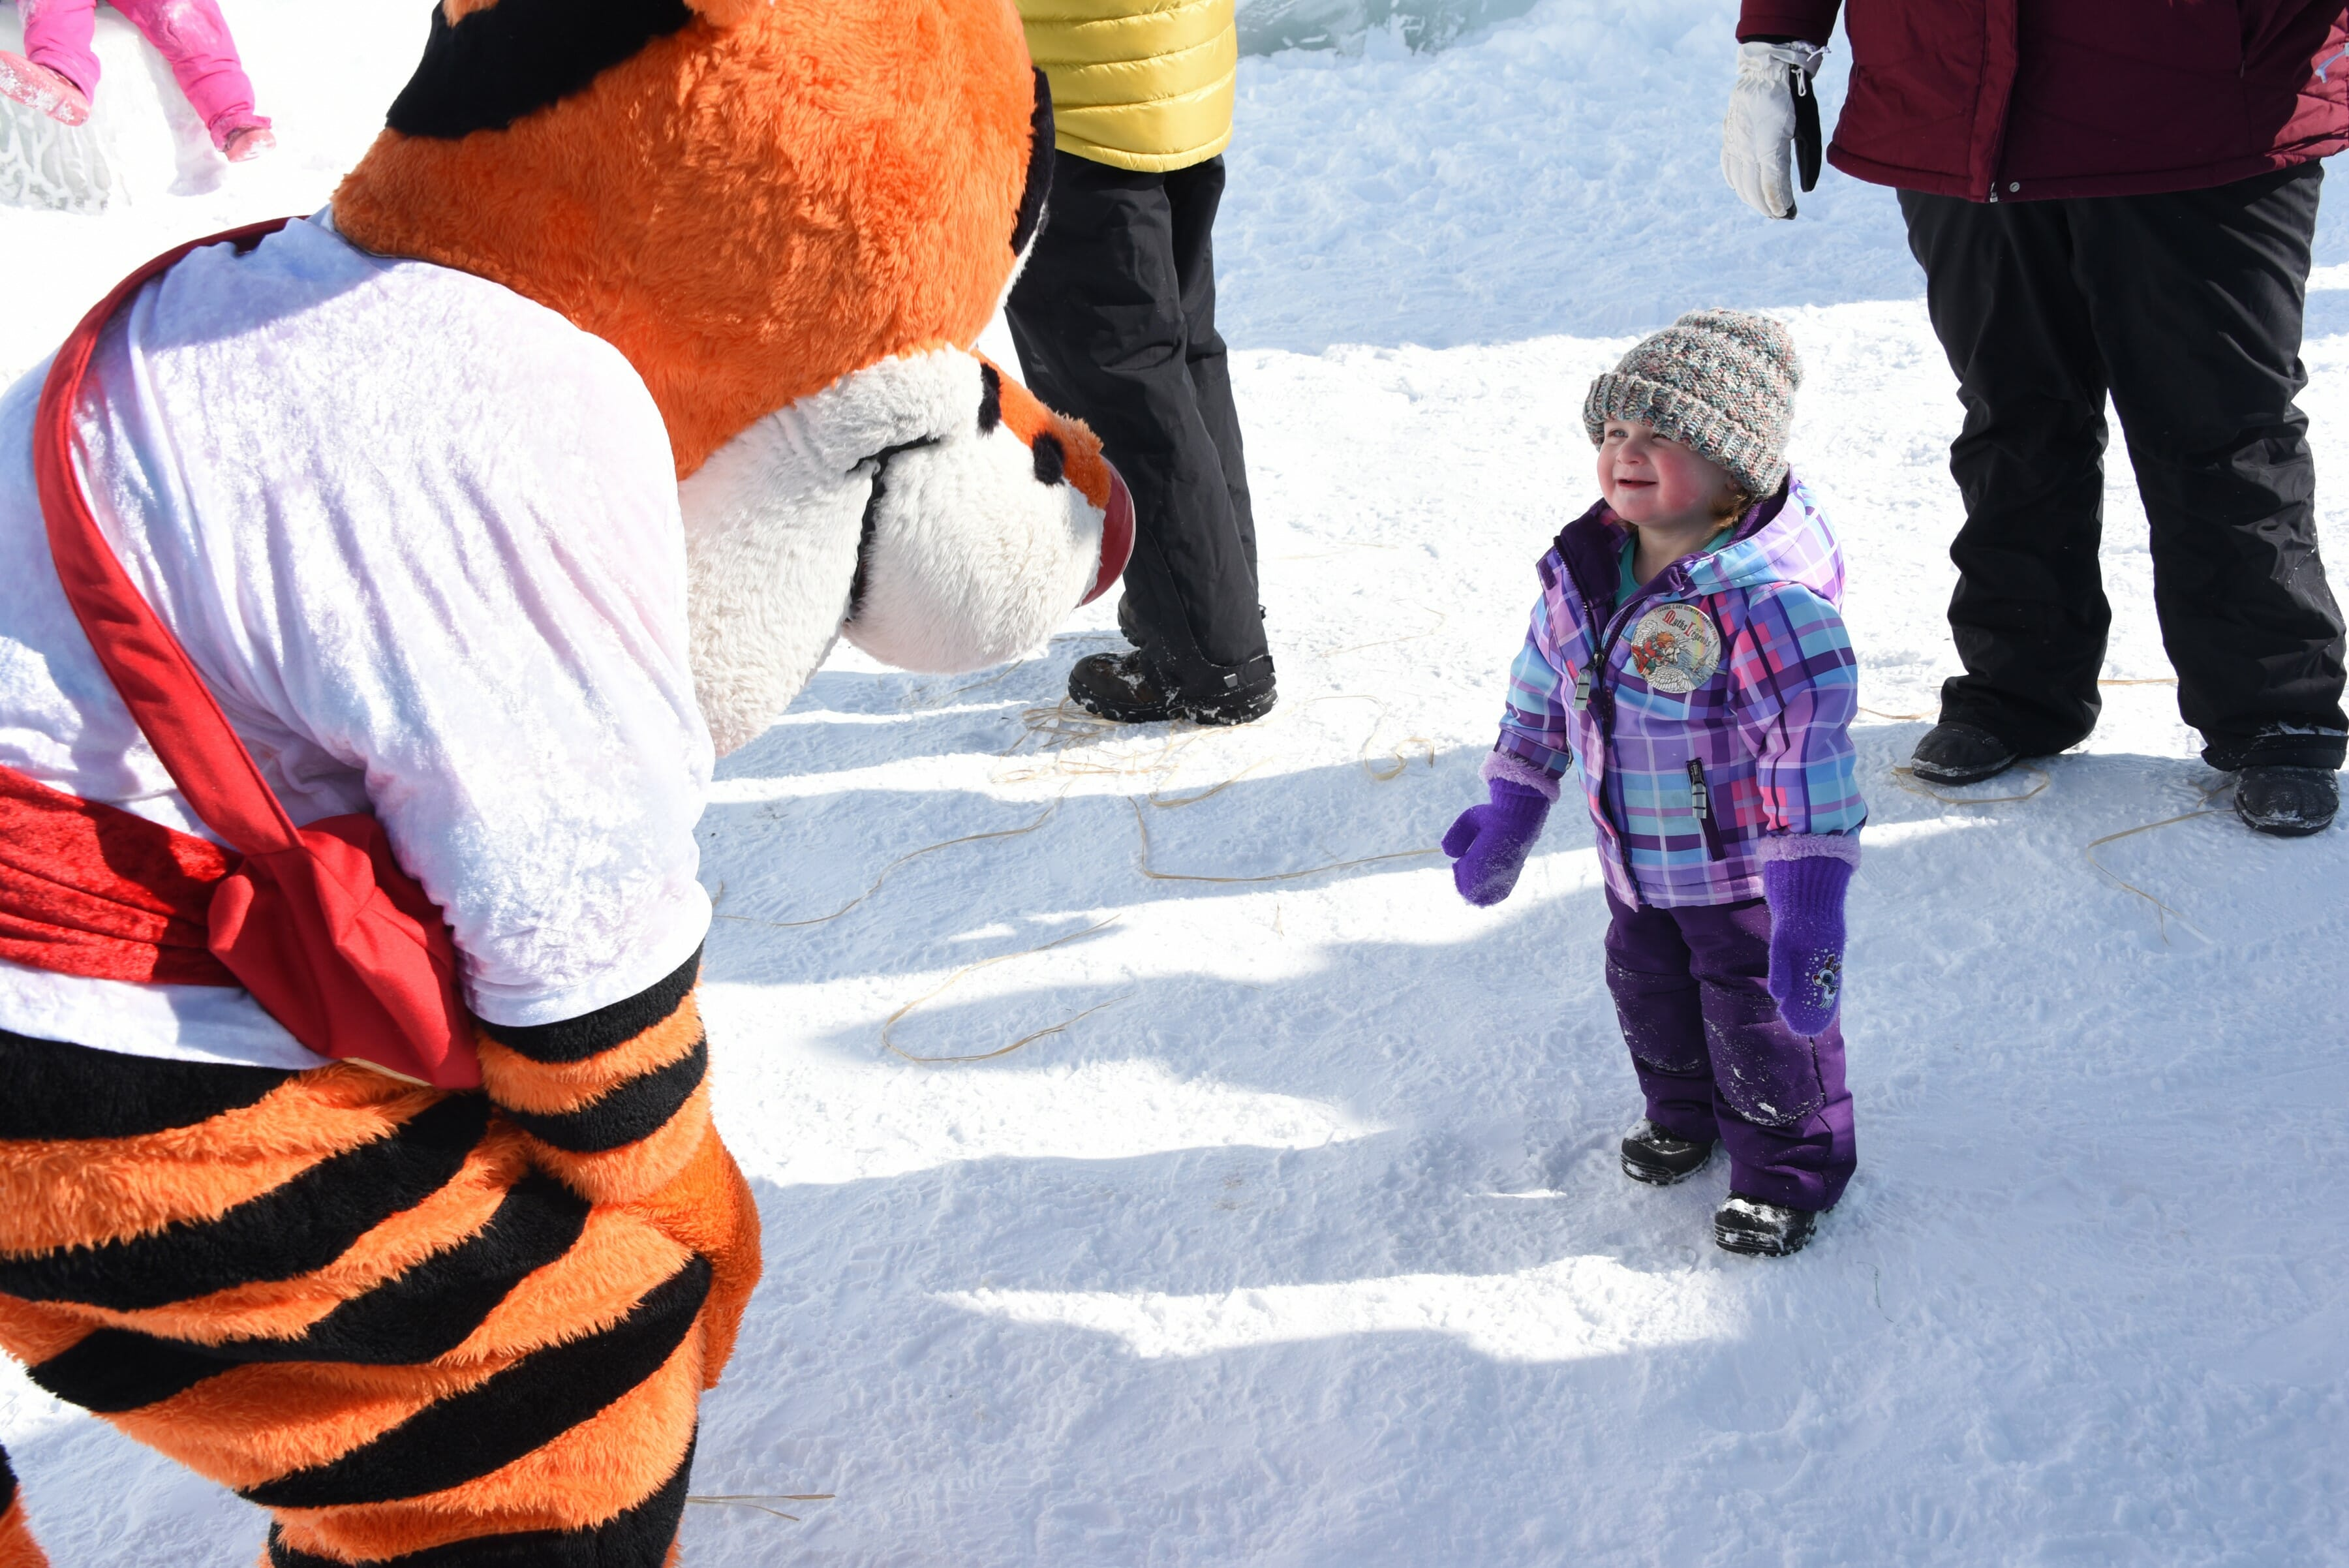 little girl greeted by a costumed character.